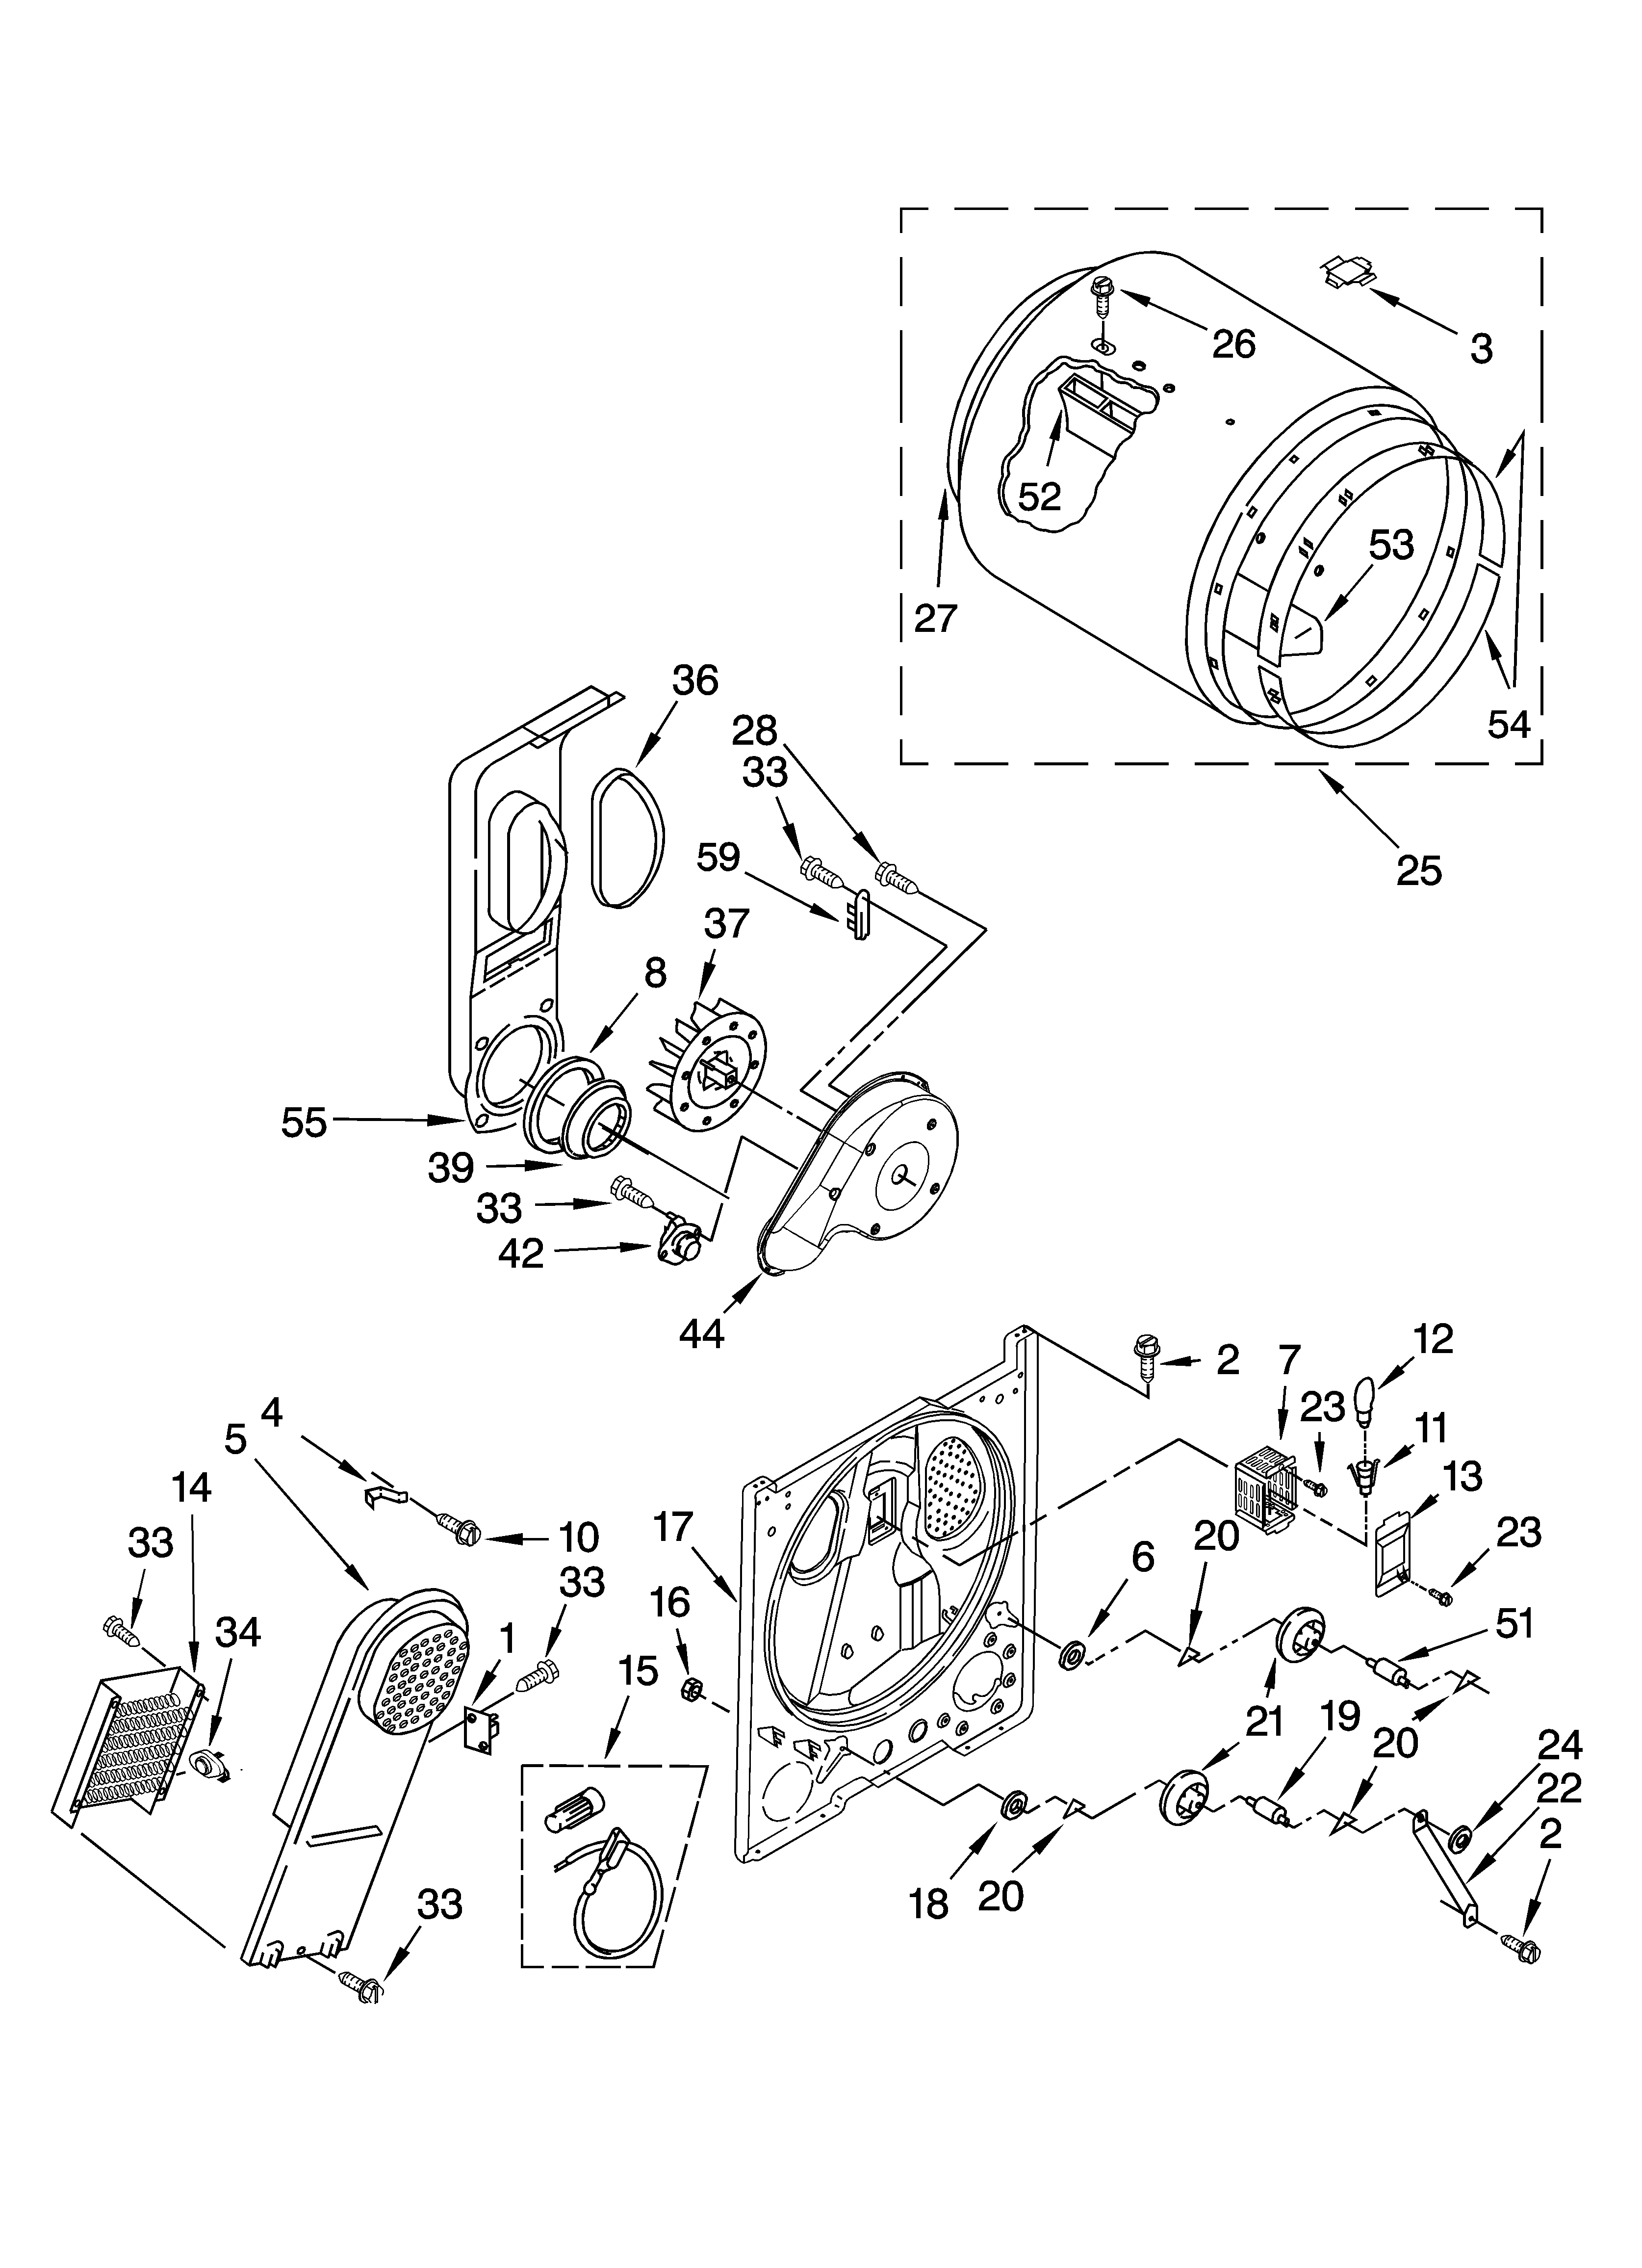 Kenmore Dryer Model 110.62952100 Wiring Diagram